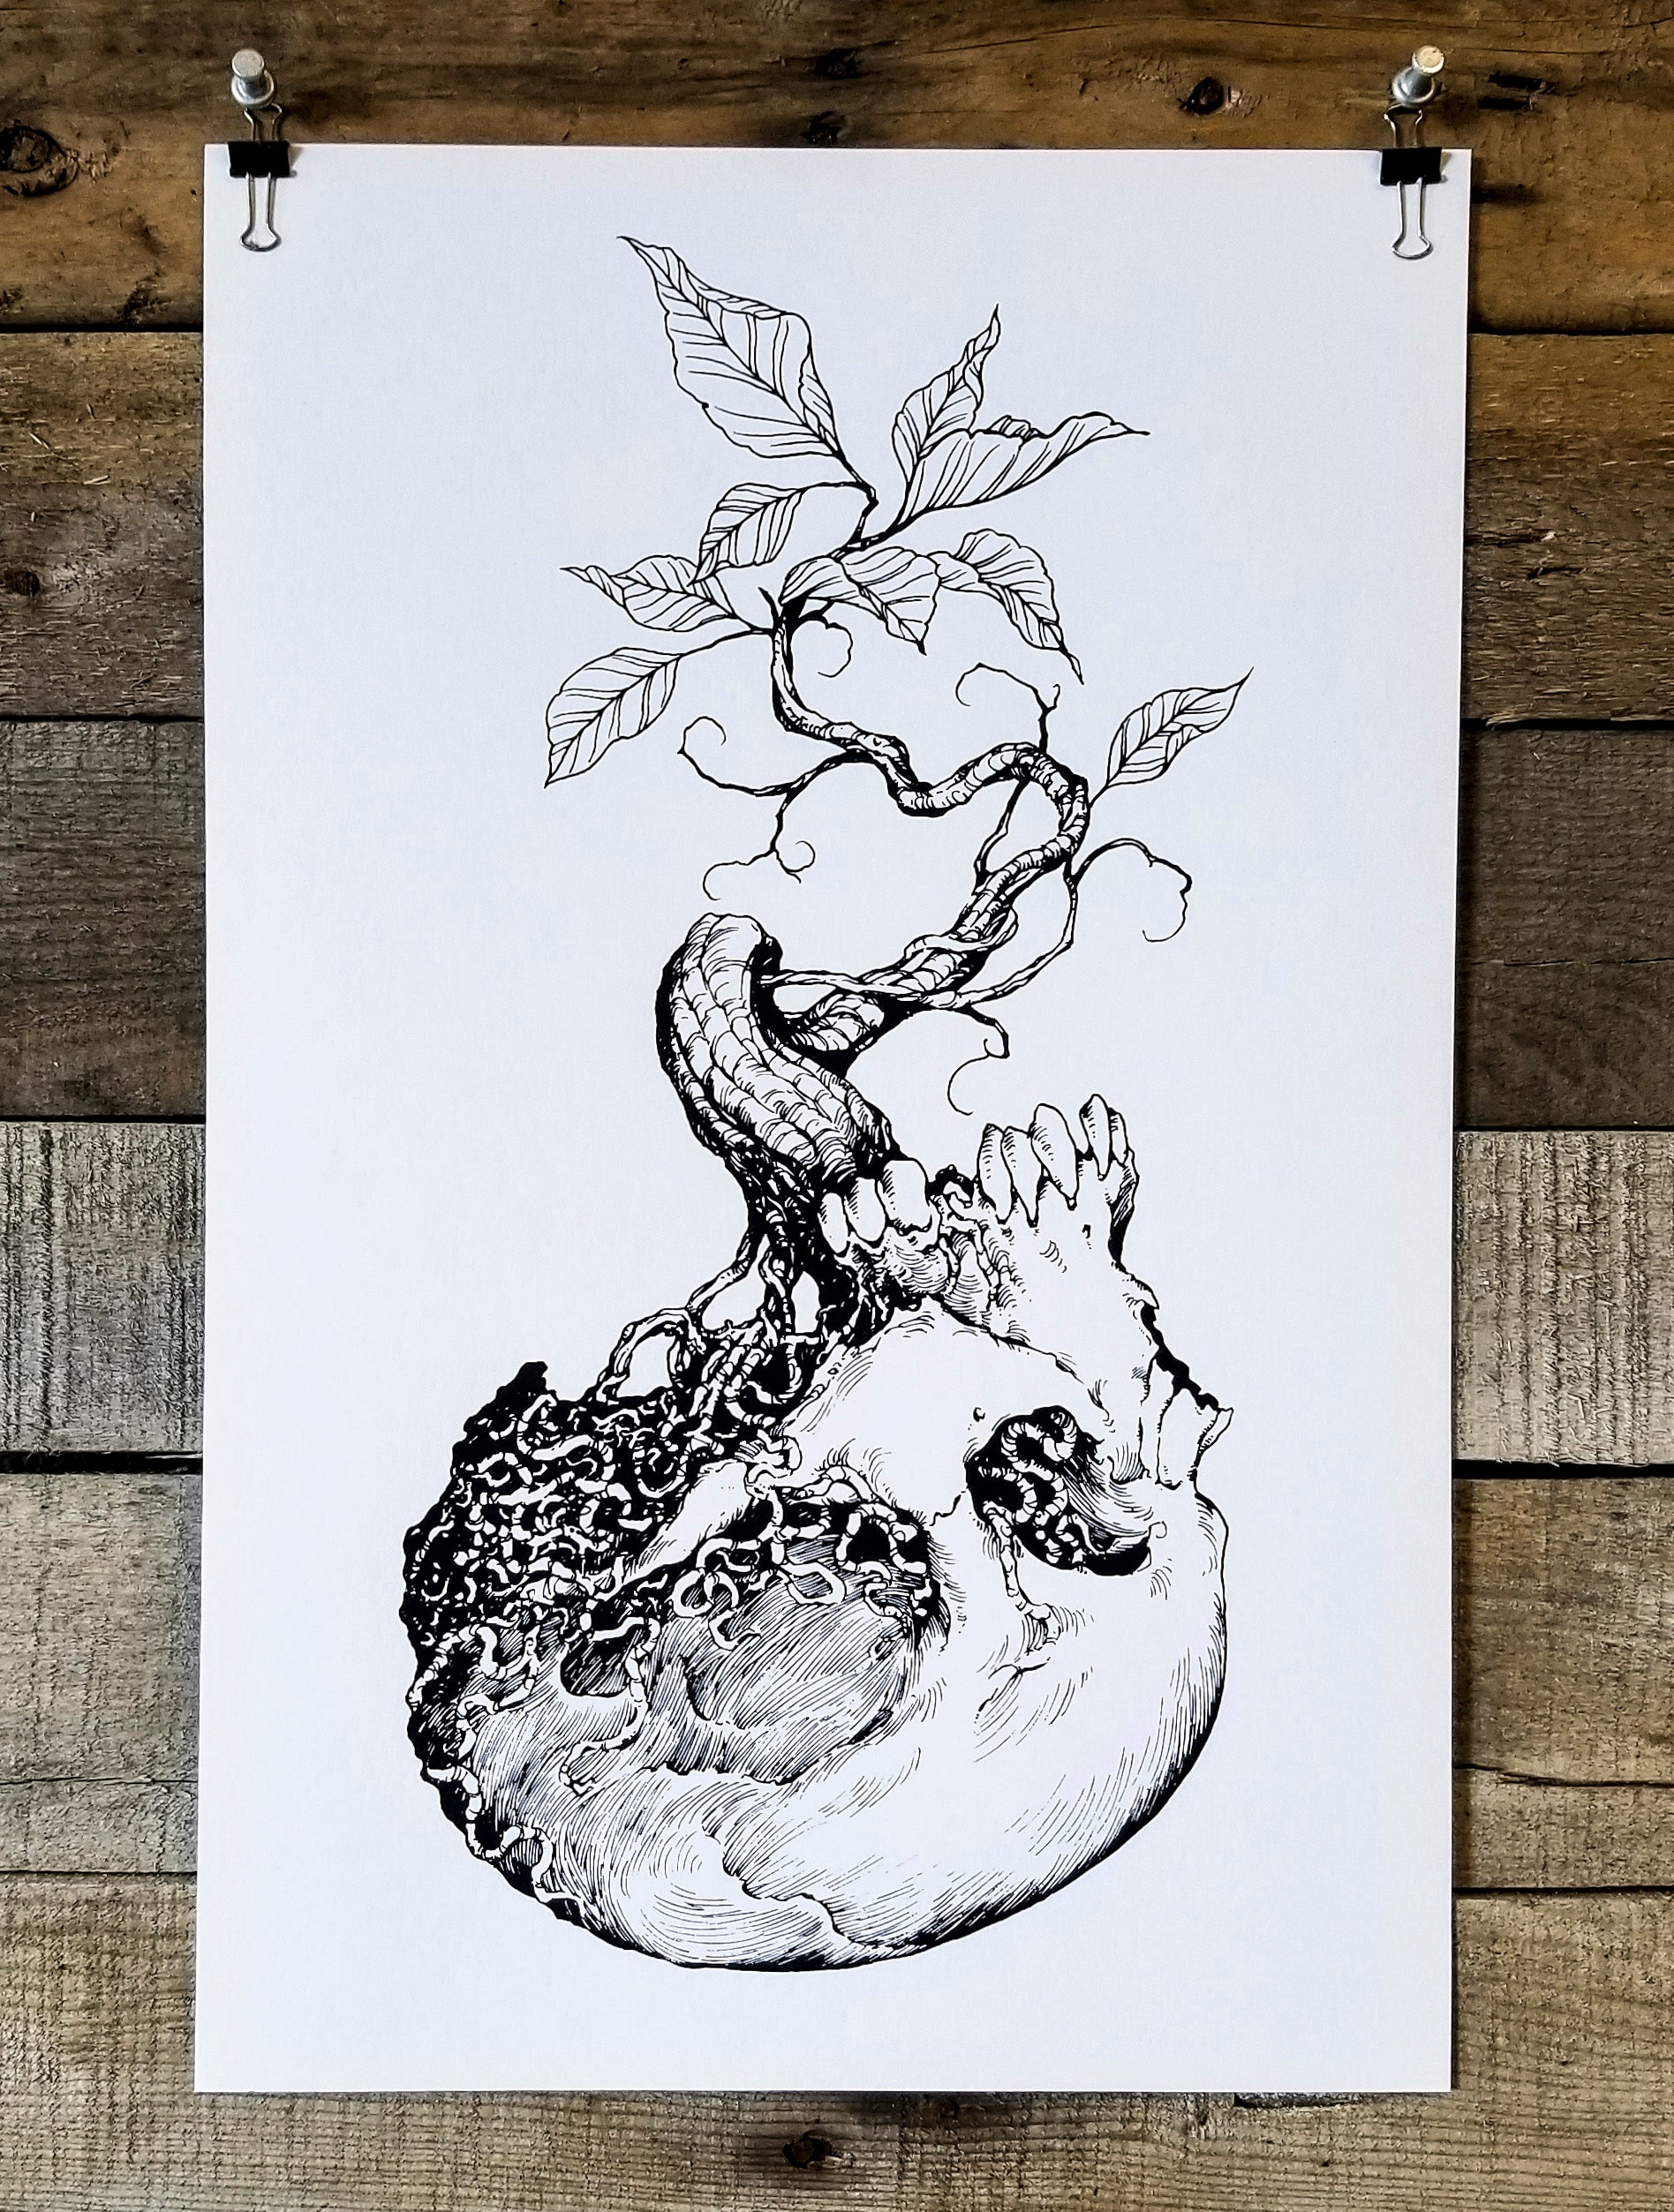 Black & White screen print by Brandon Stewart of a plant growing out of a skull